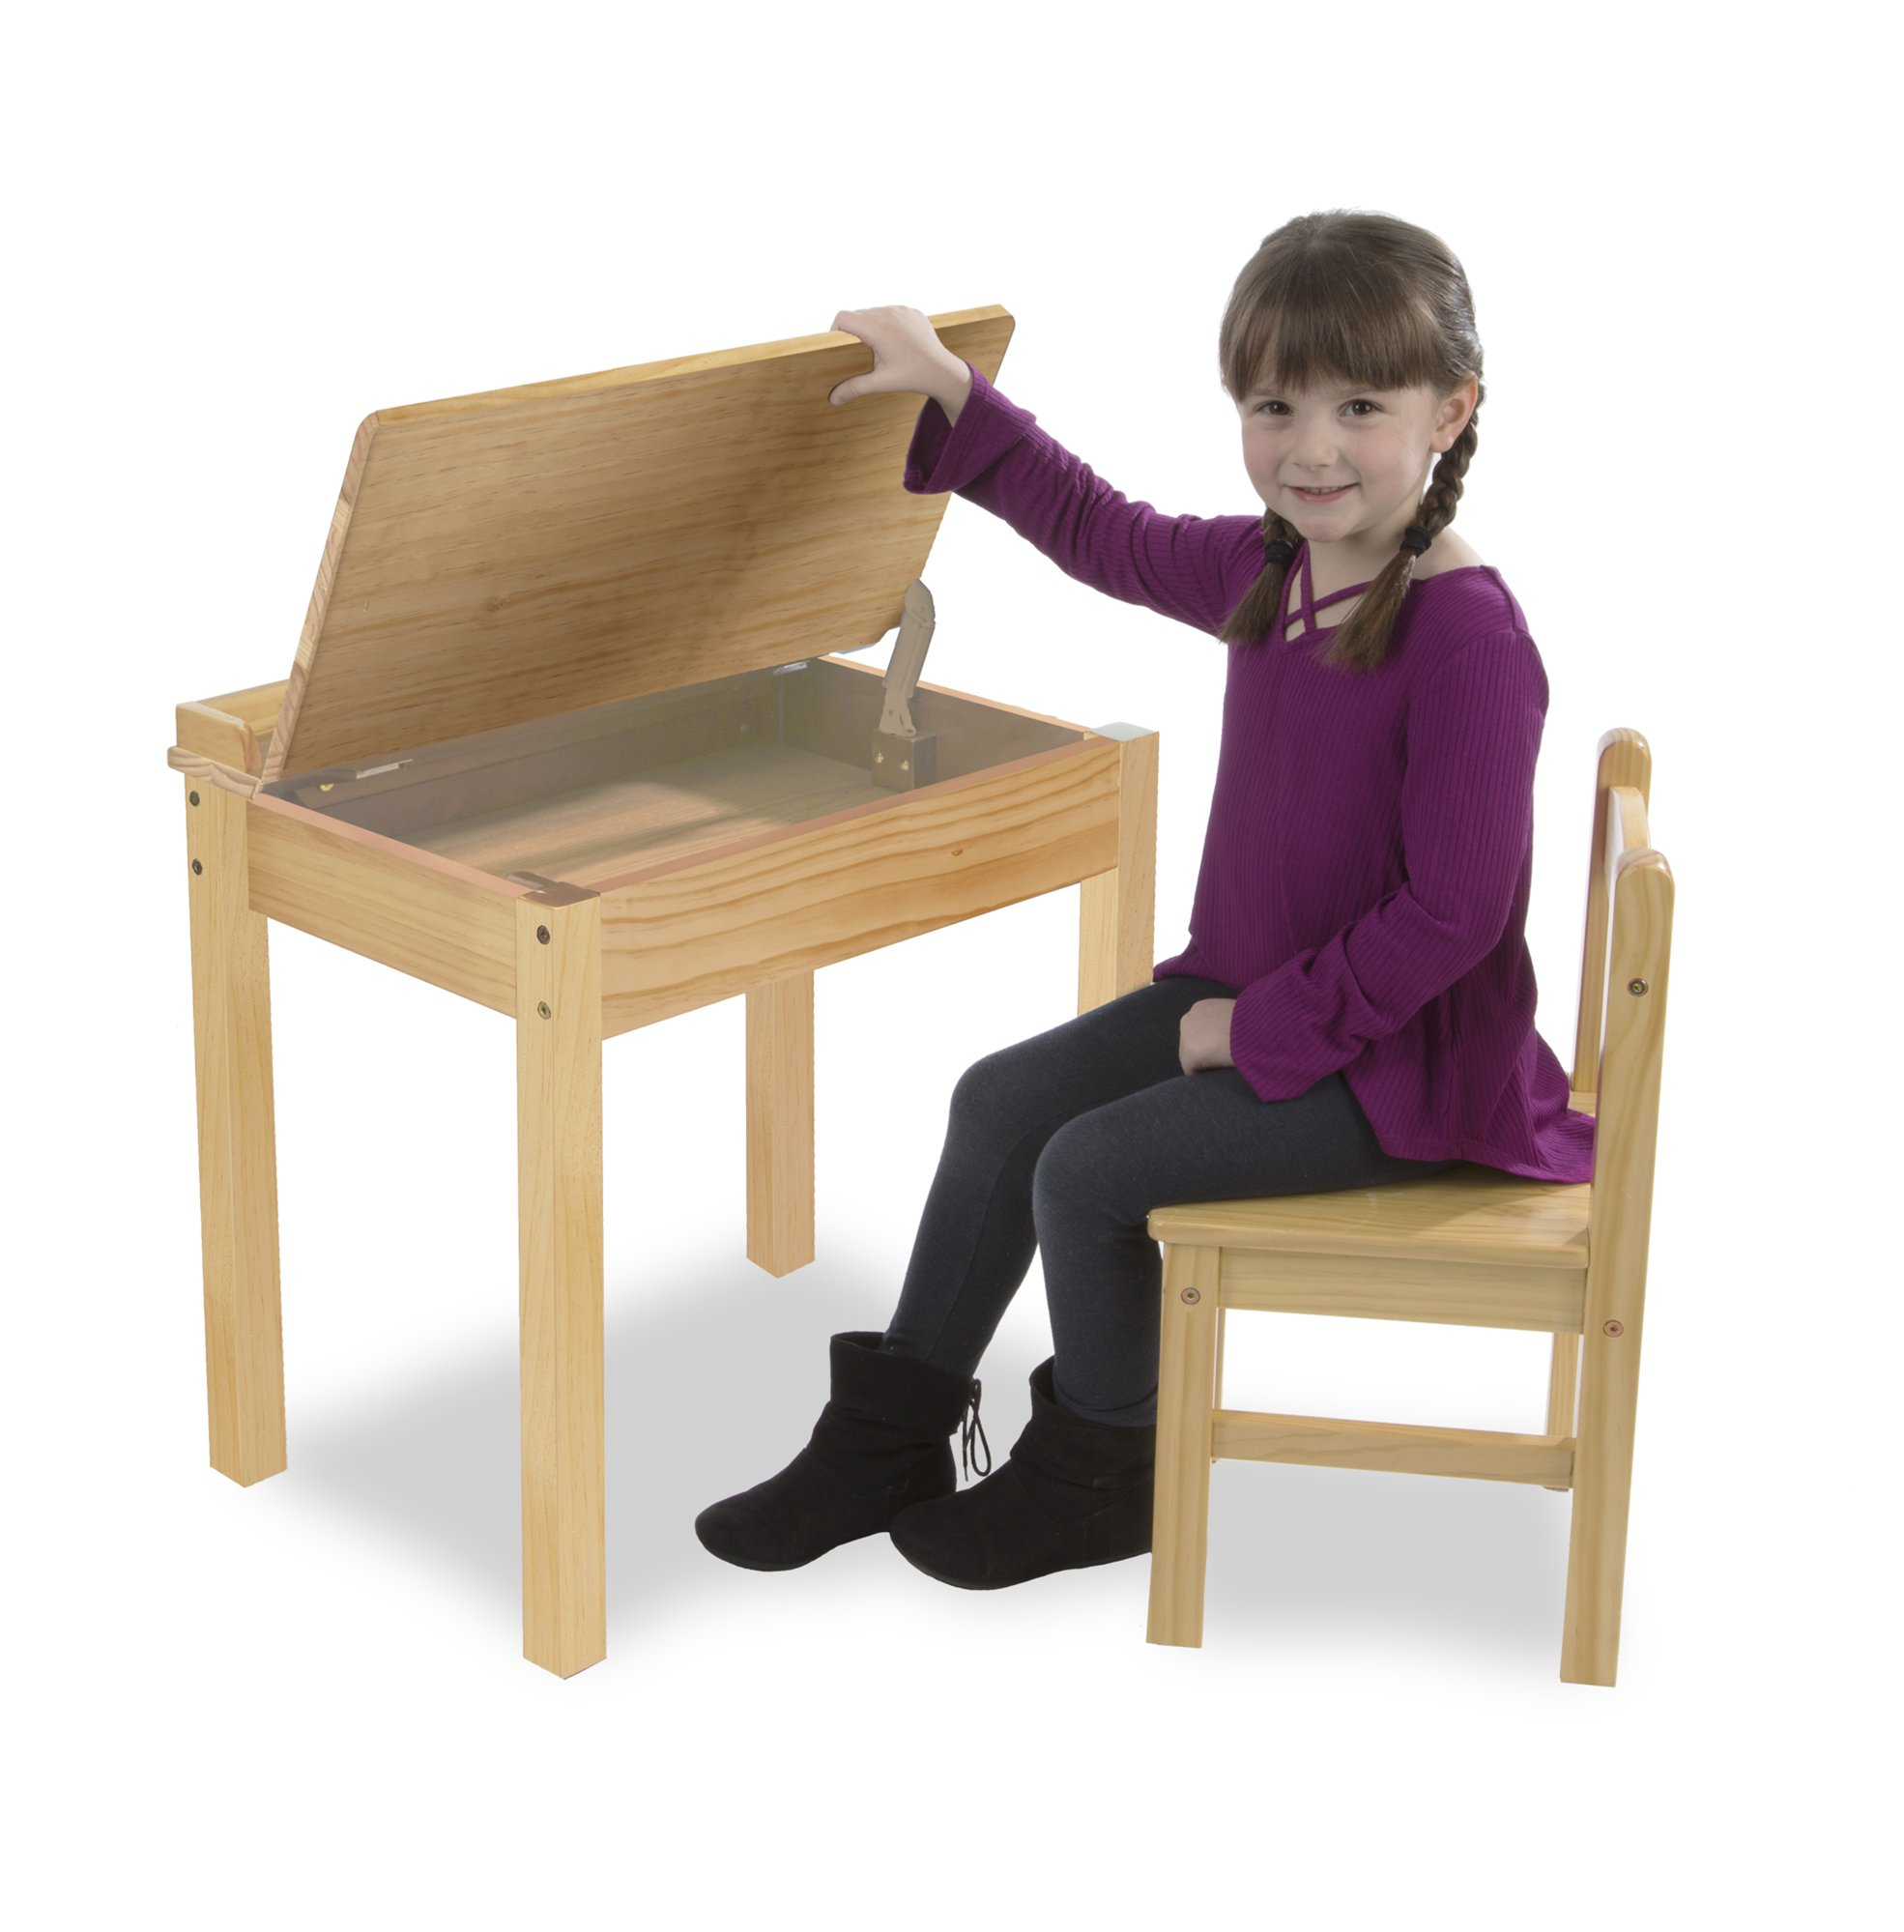 Melissa & Doug Desk & Chair - Wood Grain Children's Furniture